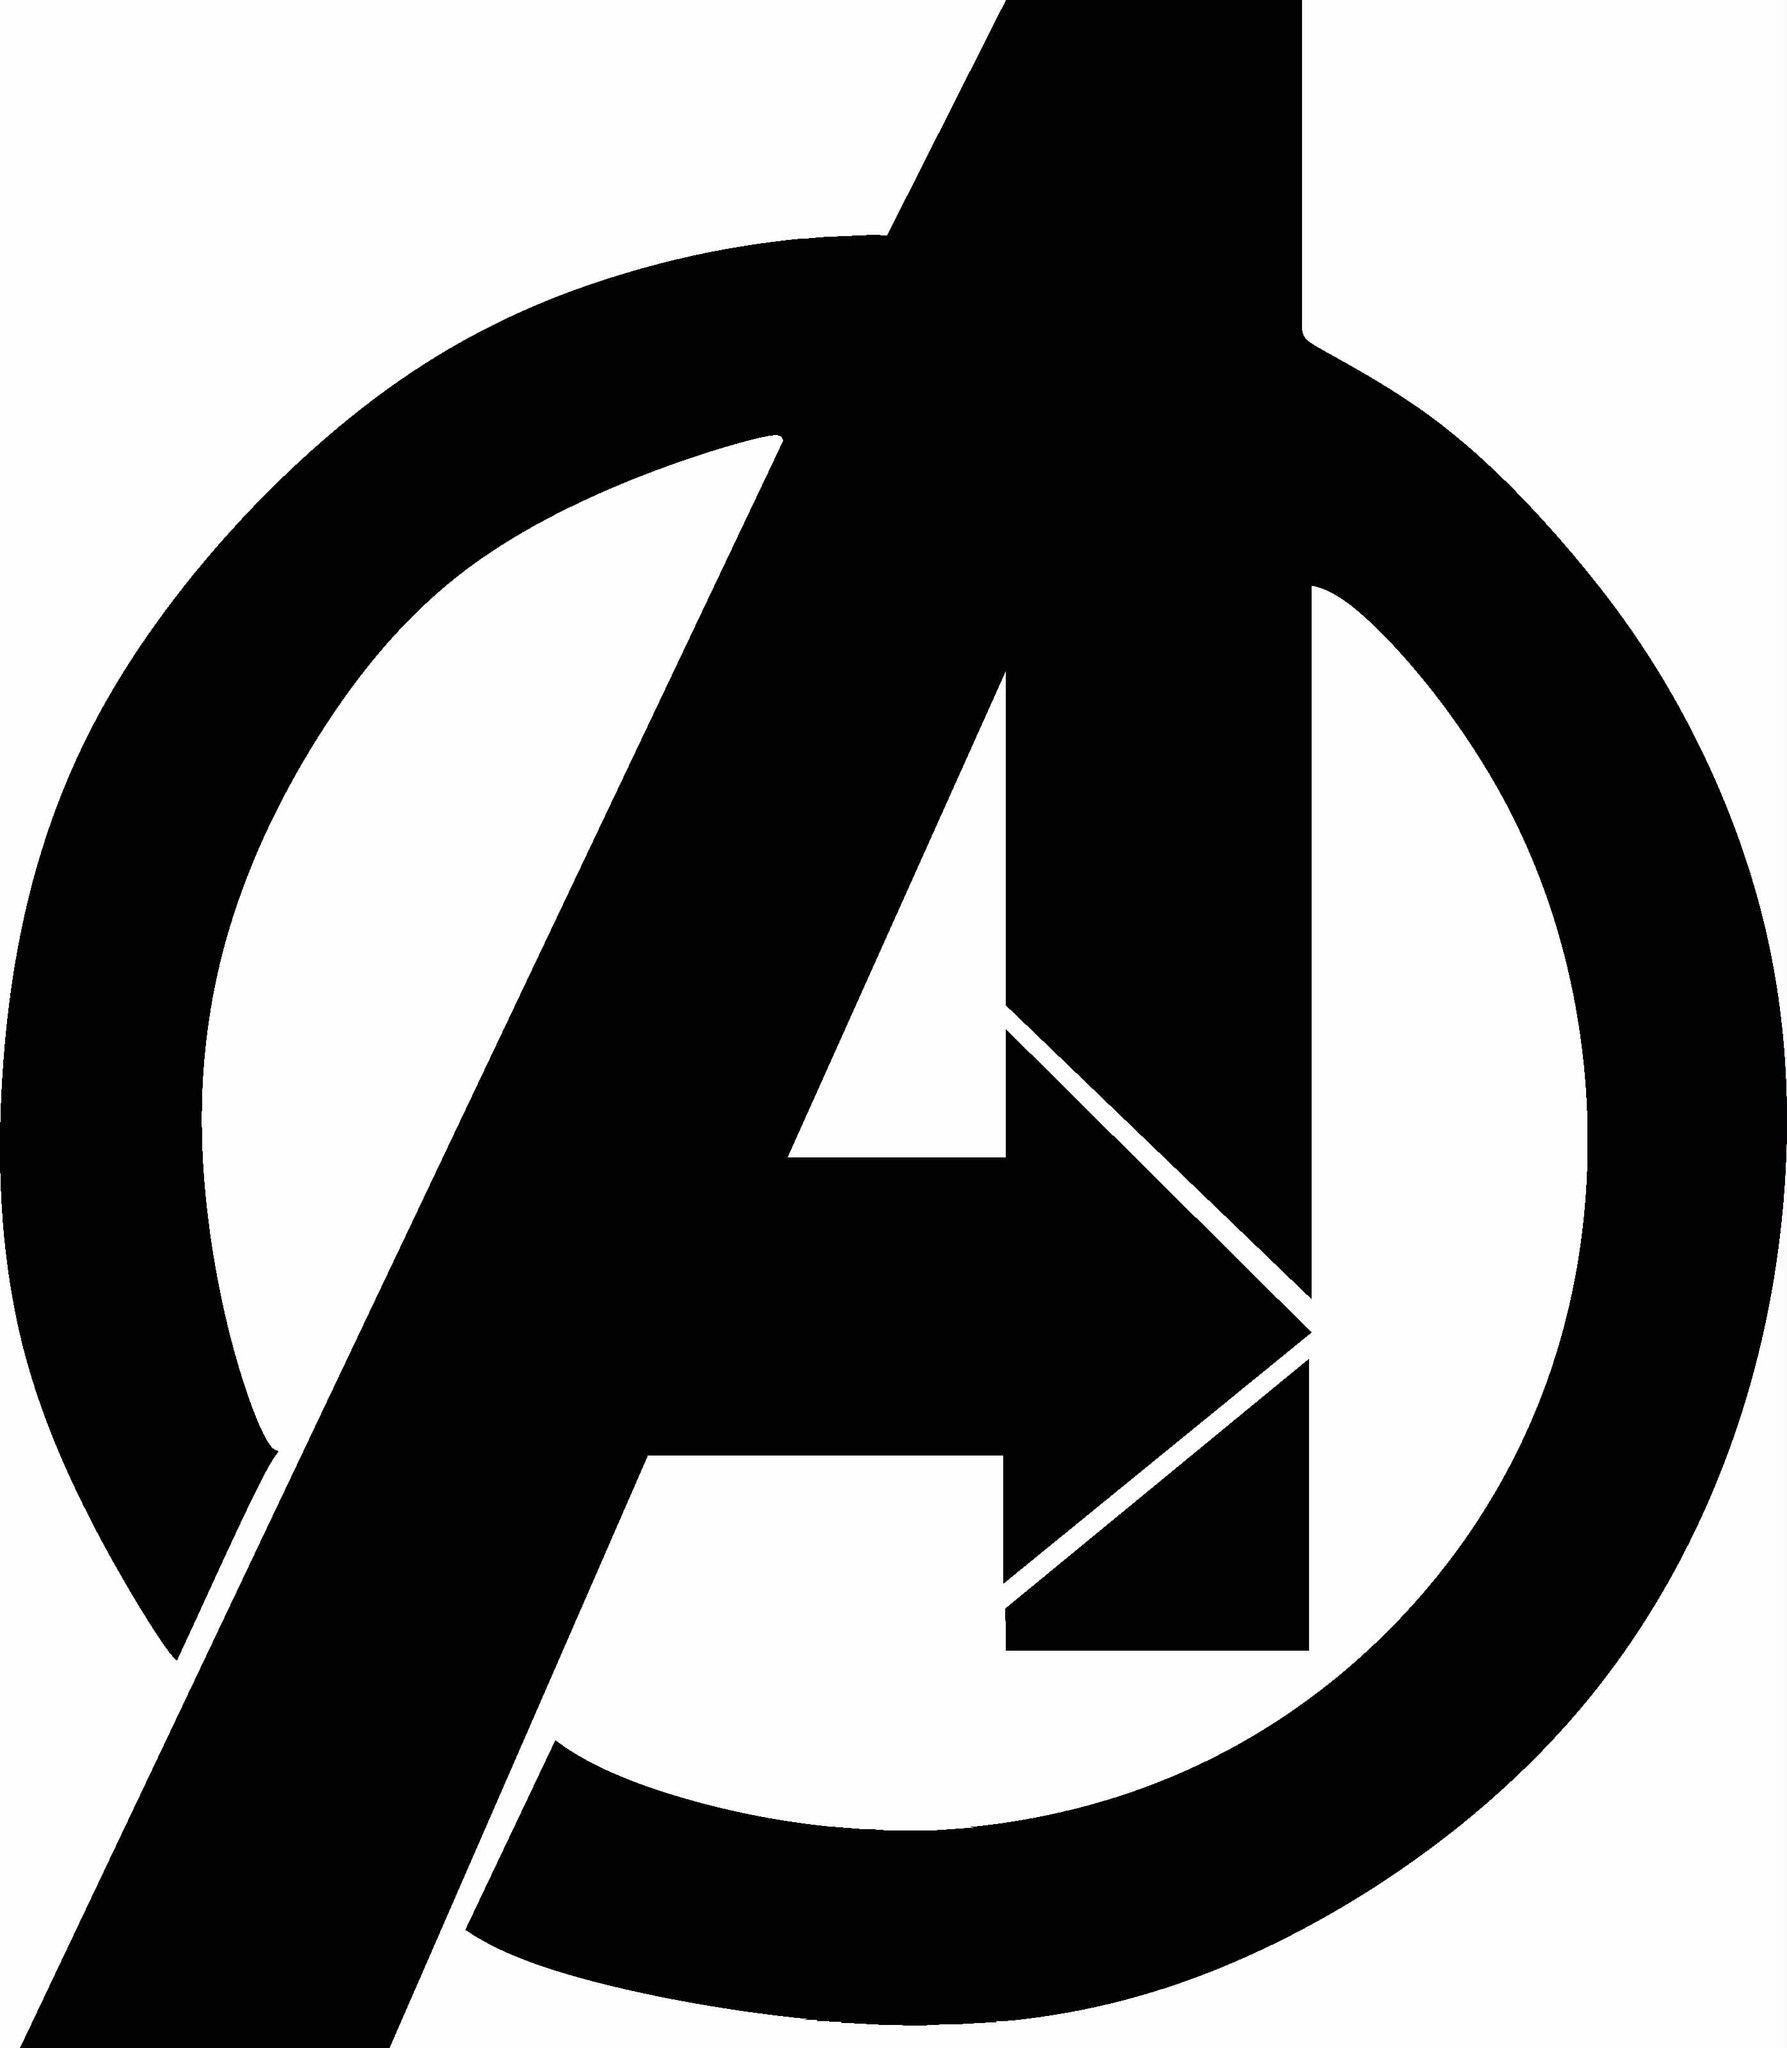 Superhero Logos The Symbols Of The Comic Book Universe Avengers Symbols Avengers Logo Avengers Coloring Pages